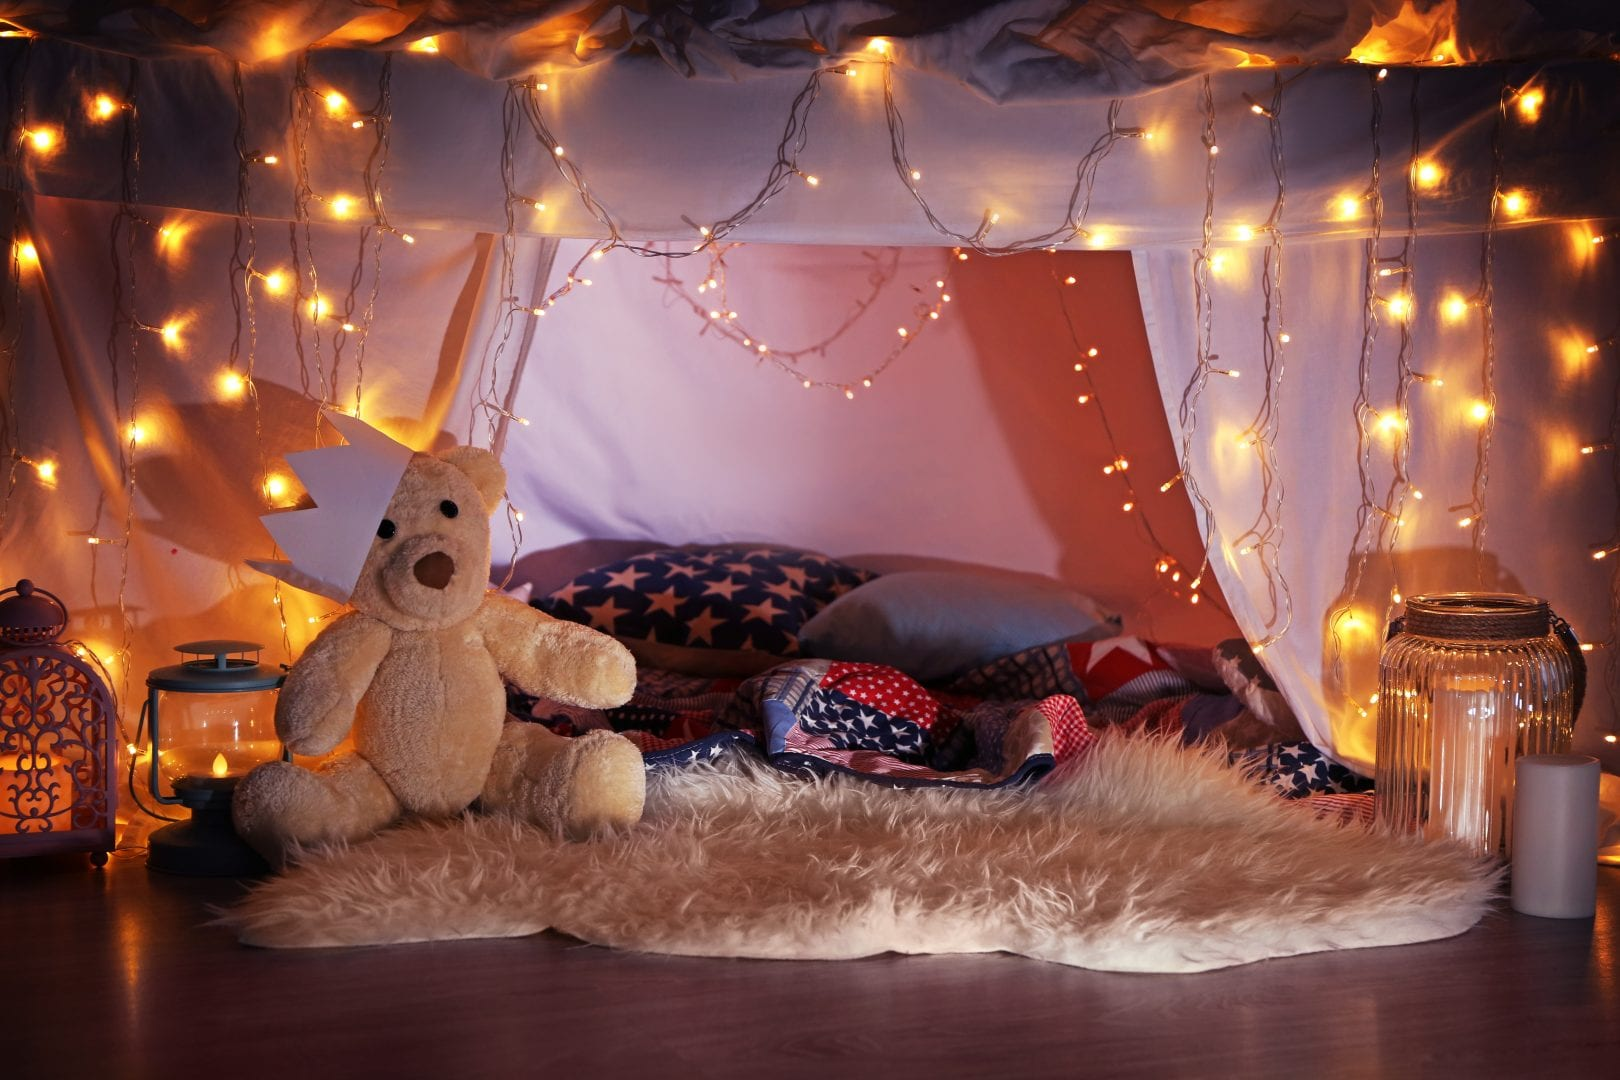 an indoor tent built out of sheets featuring, pillows, blankets, a teddy bear, and twinkle lights.